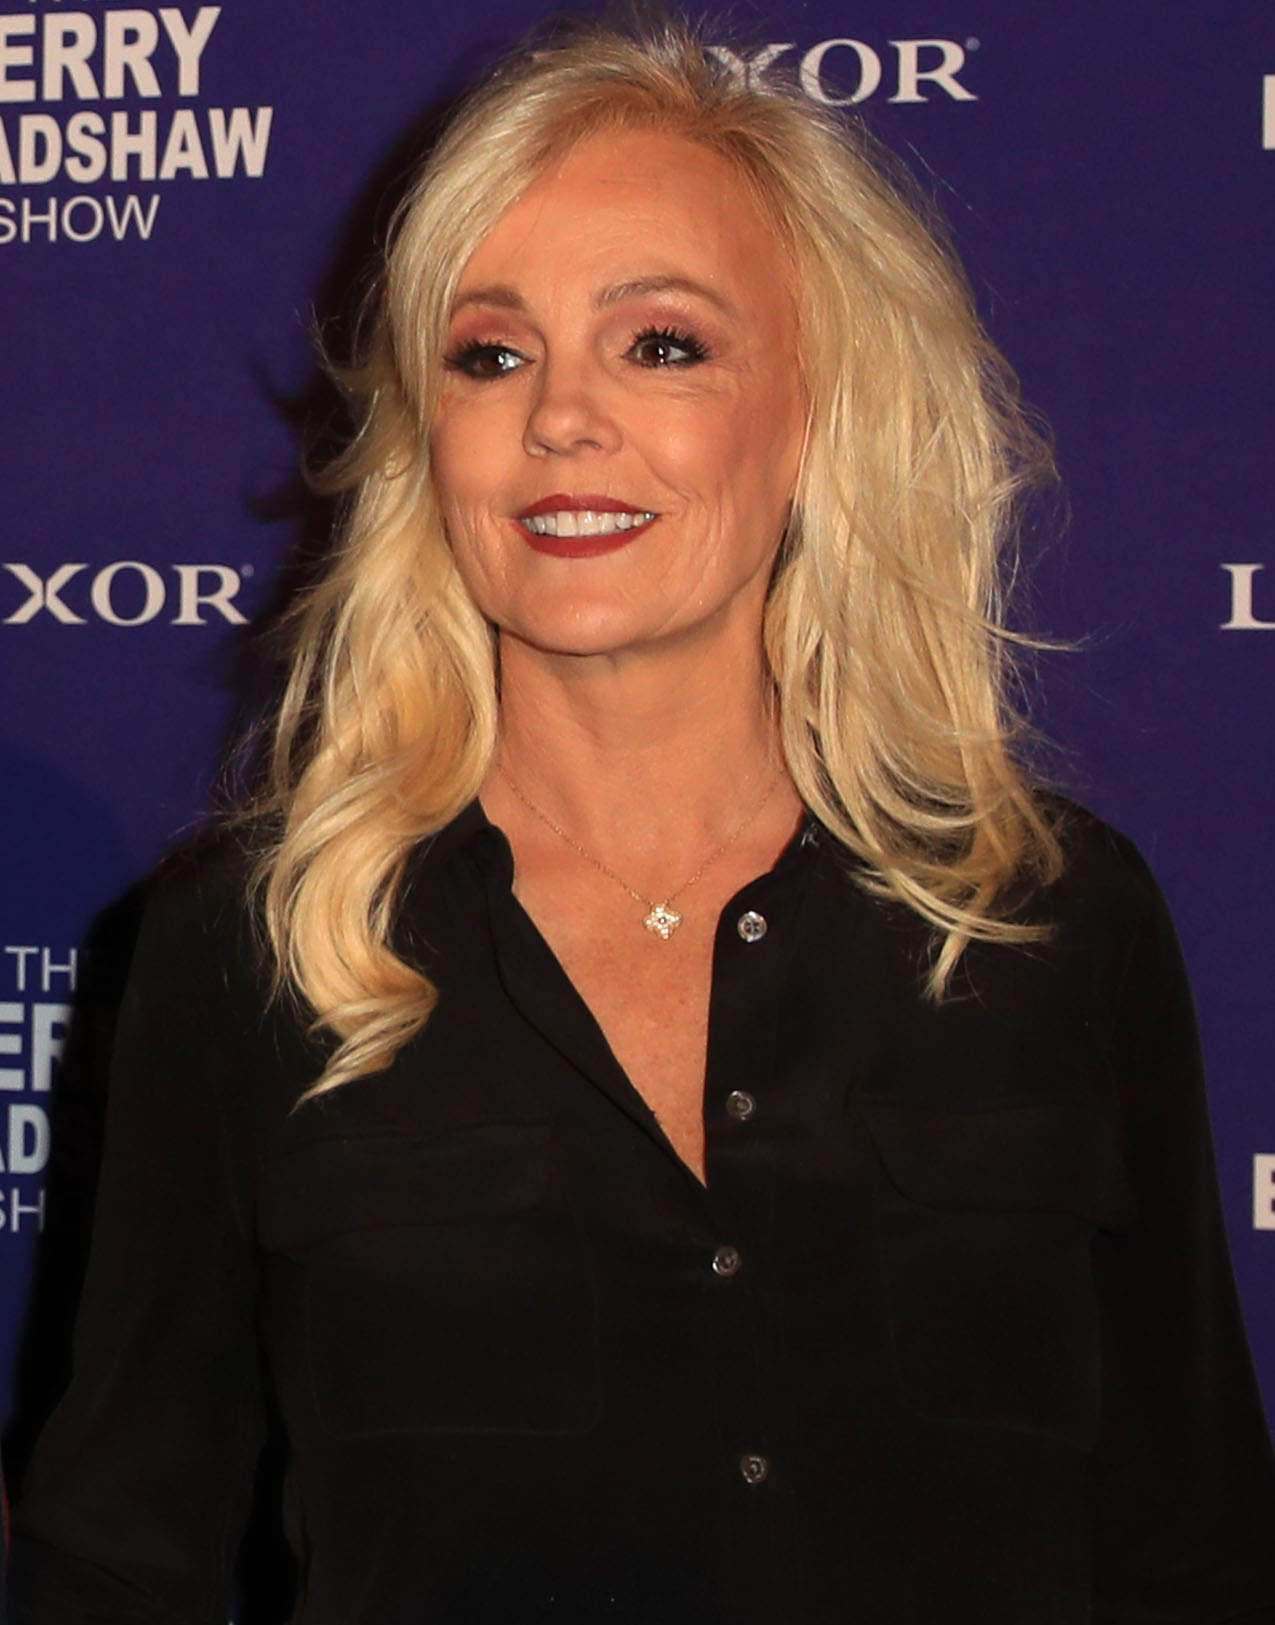 Tammy Bradshaw, a former model and a philanthropist, is known as Terry Bradshaw's fourth wife